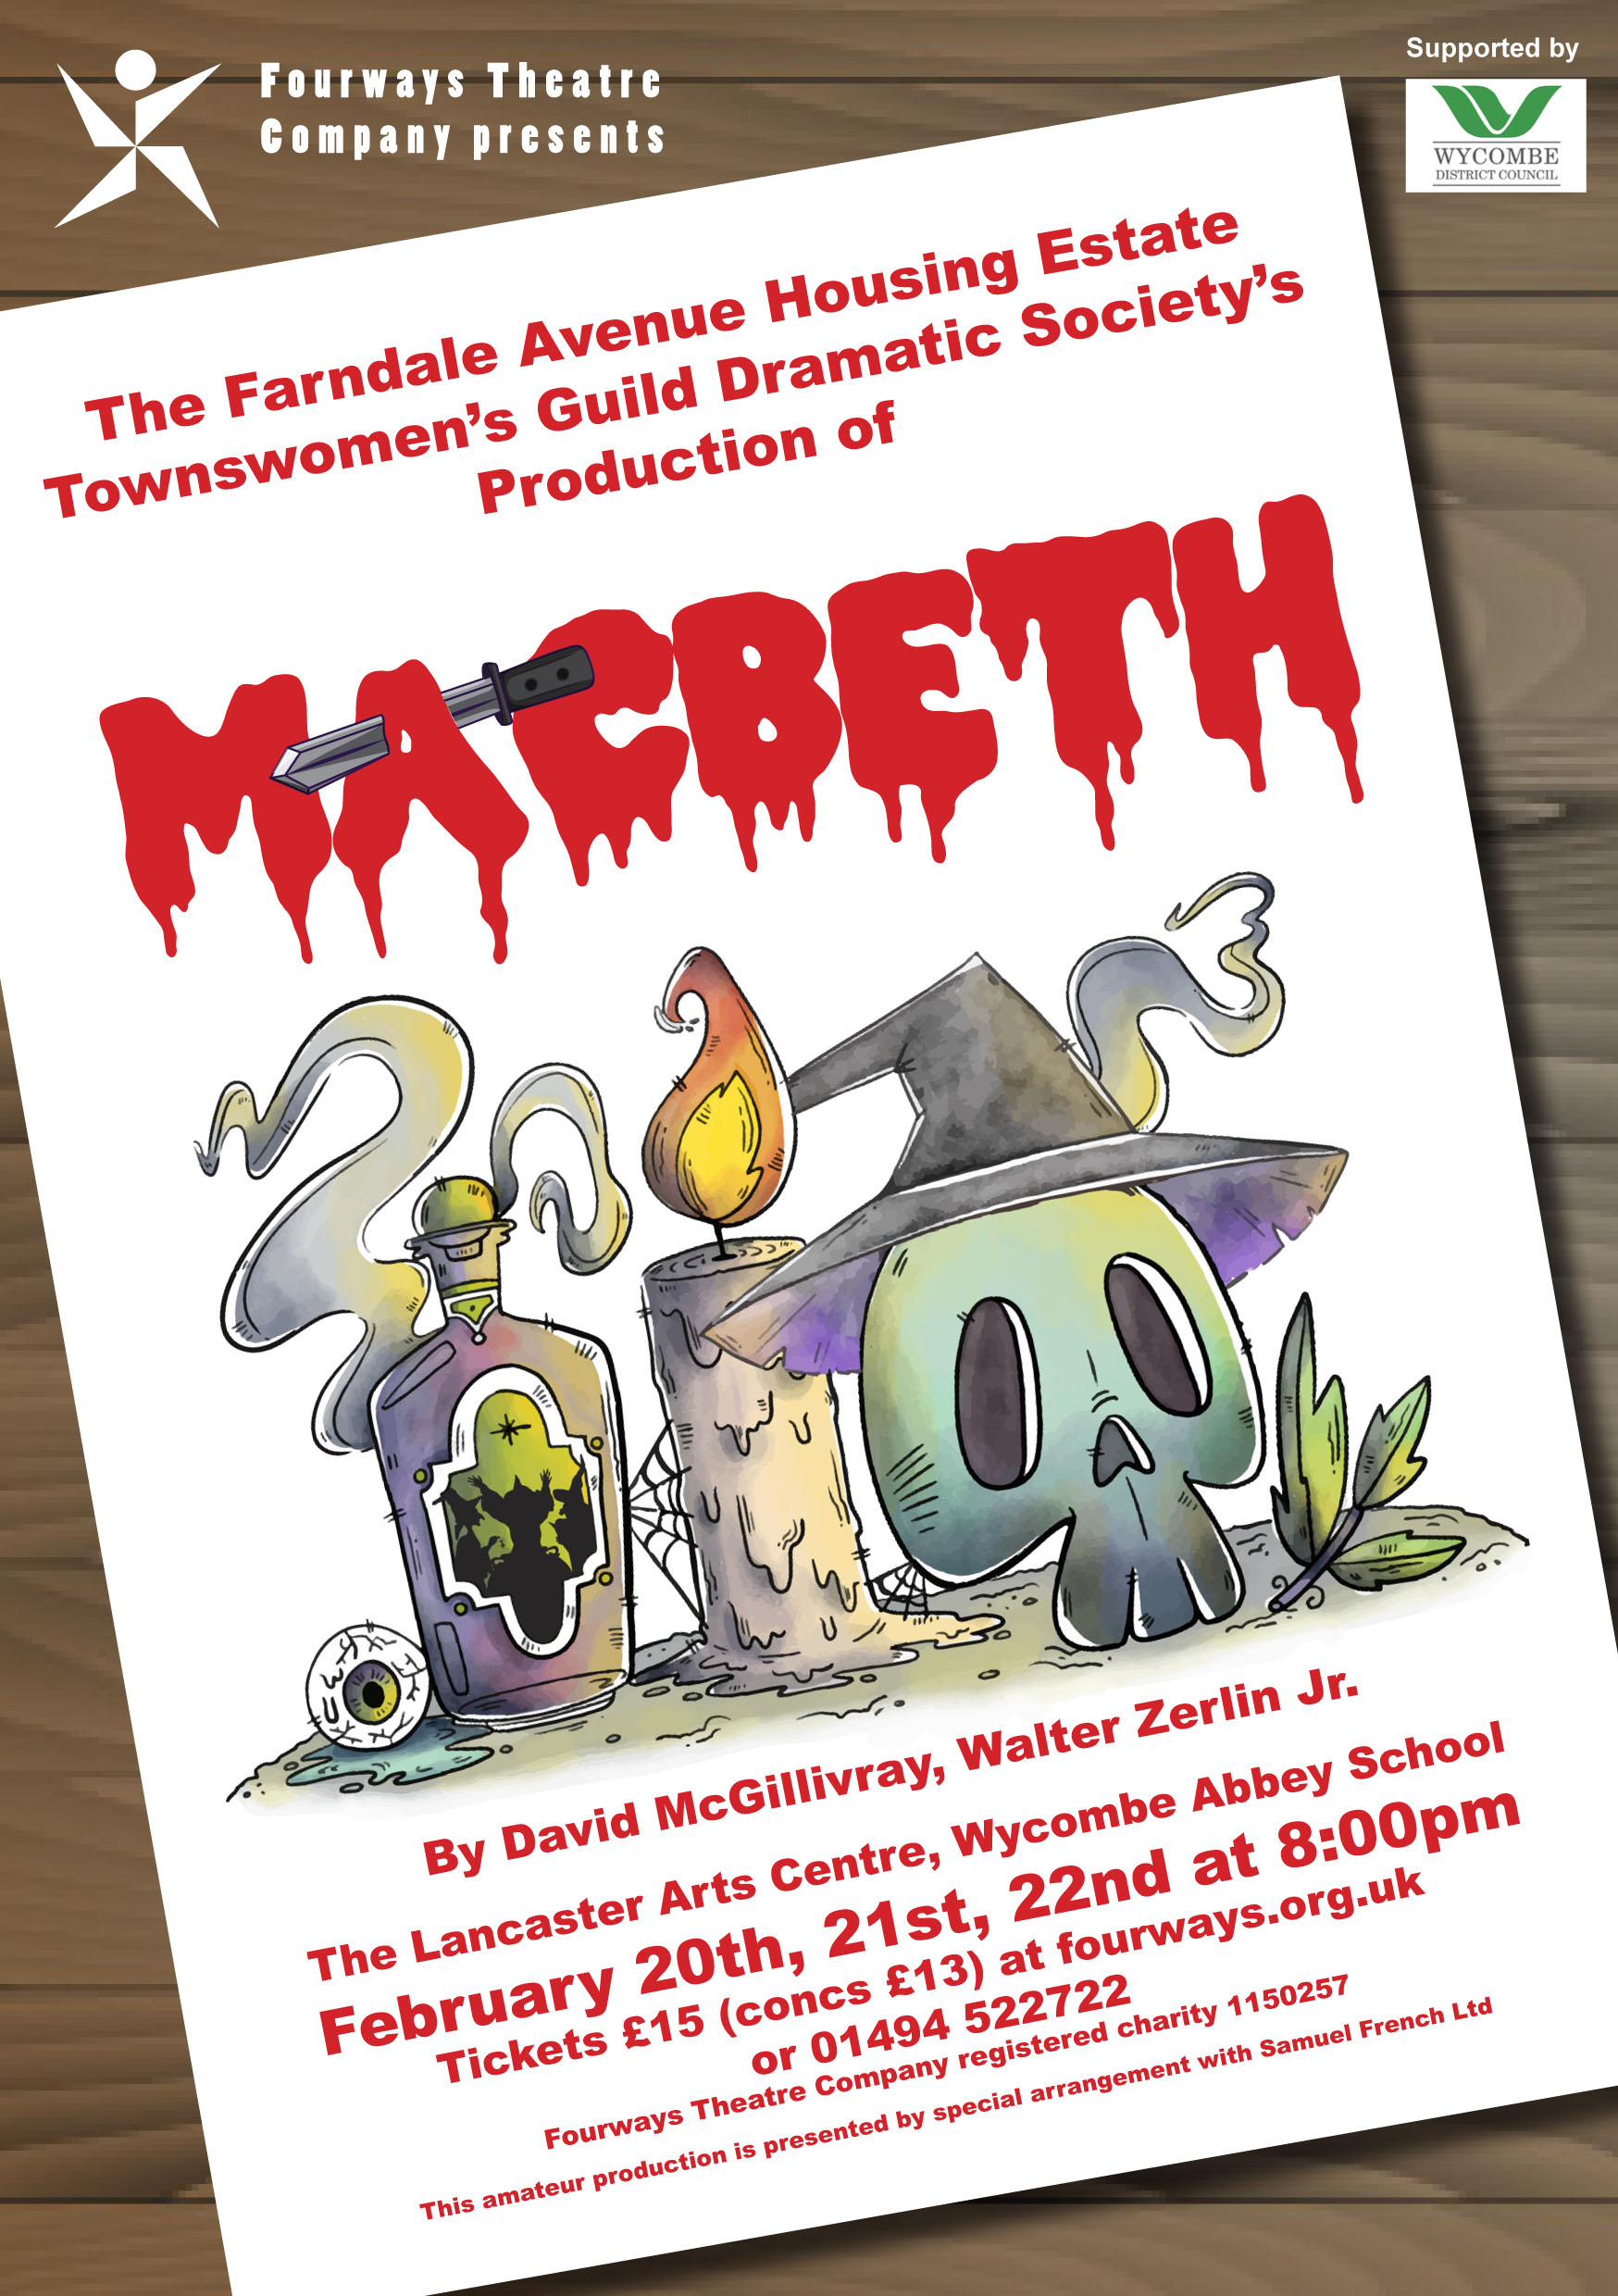 Fourways Presents                                                           The Farndale Avenue Housing Estate Townswomen's Guild Dramatic Society's Production of Macbeth